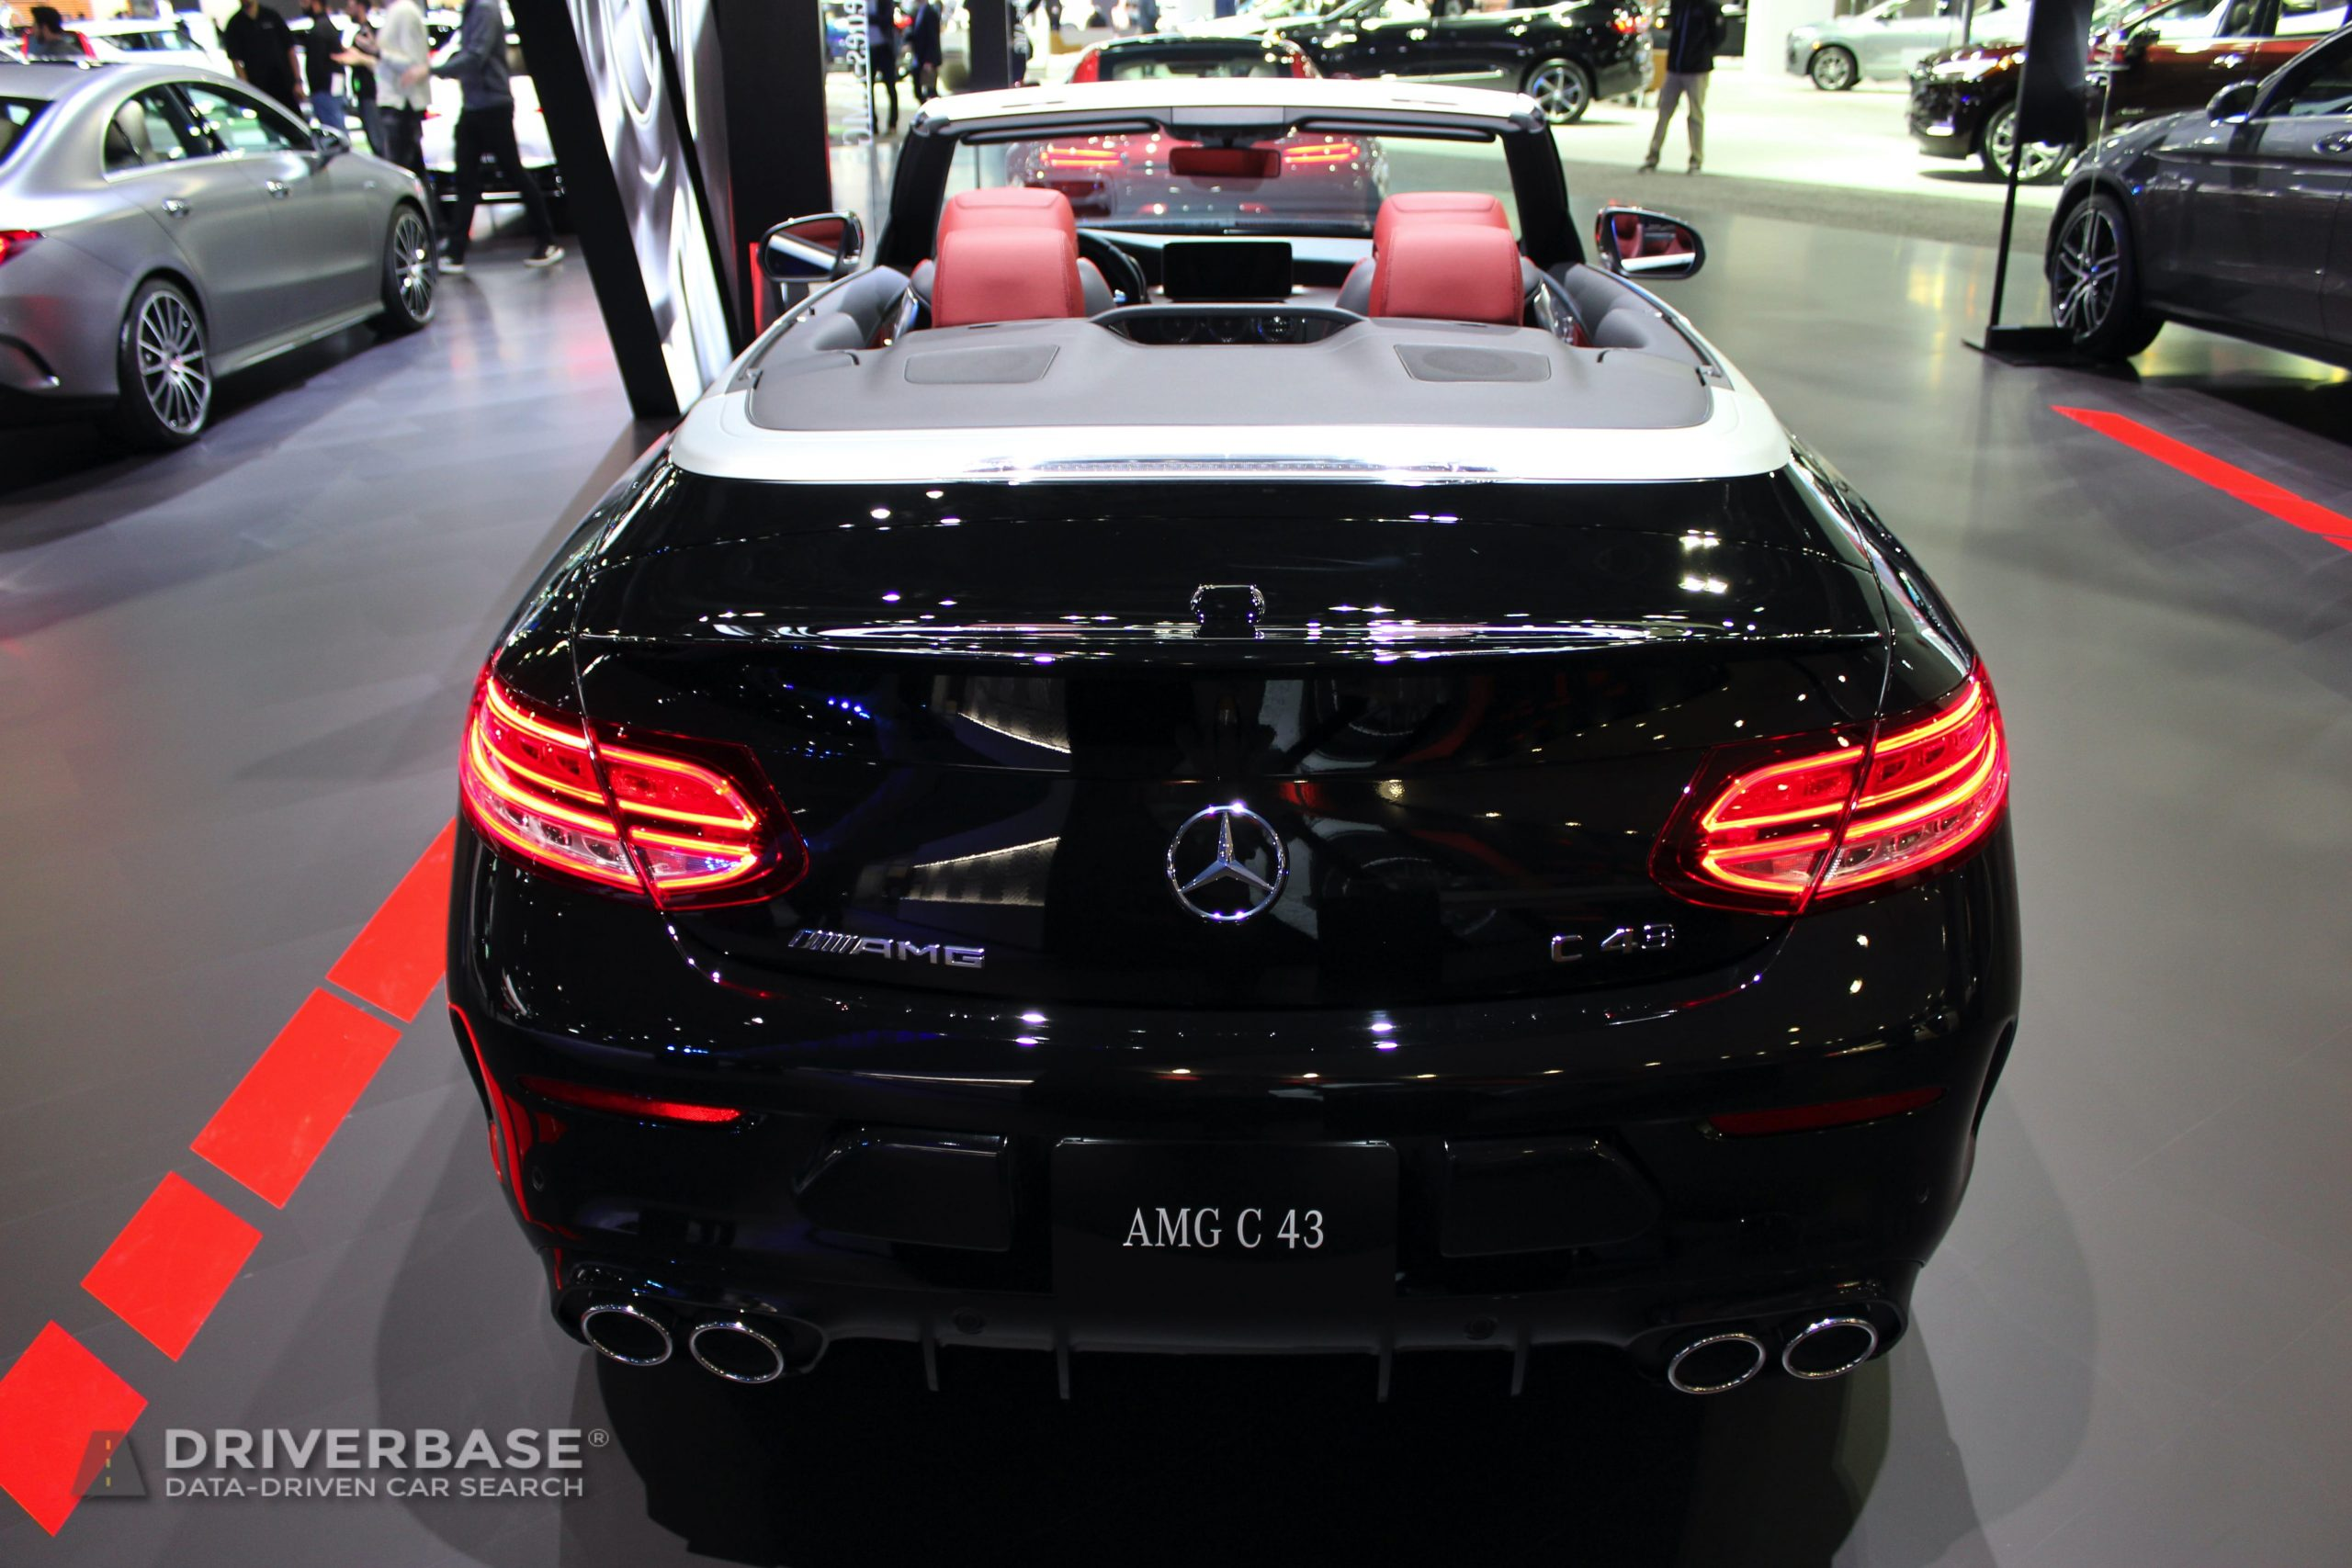 2020 Mercedes-Benz AMG C 43 at the 2019 Los Angeles Auto Show